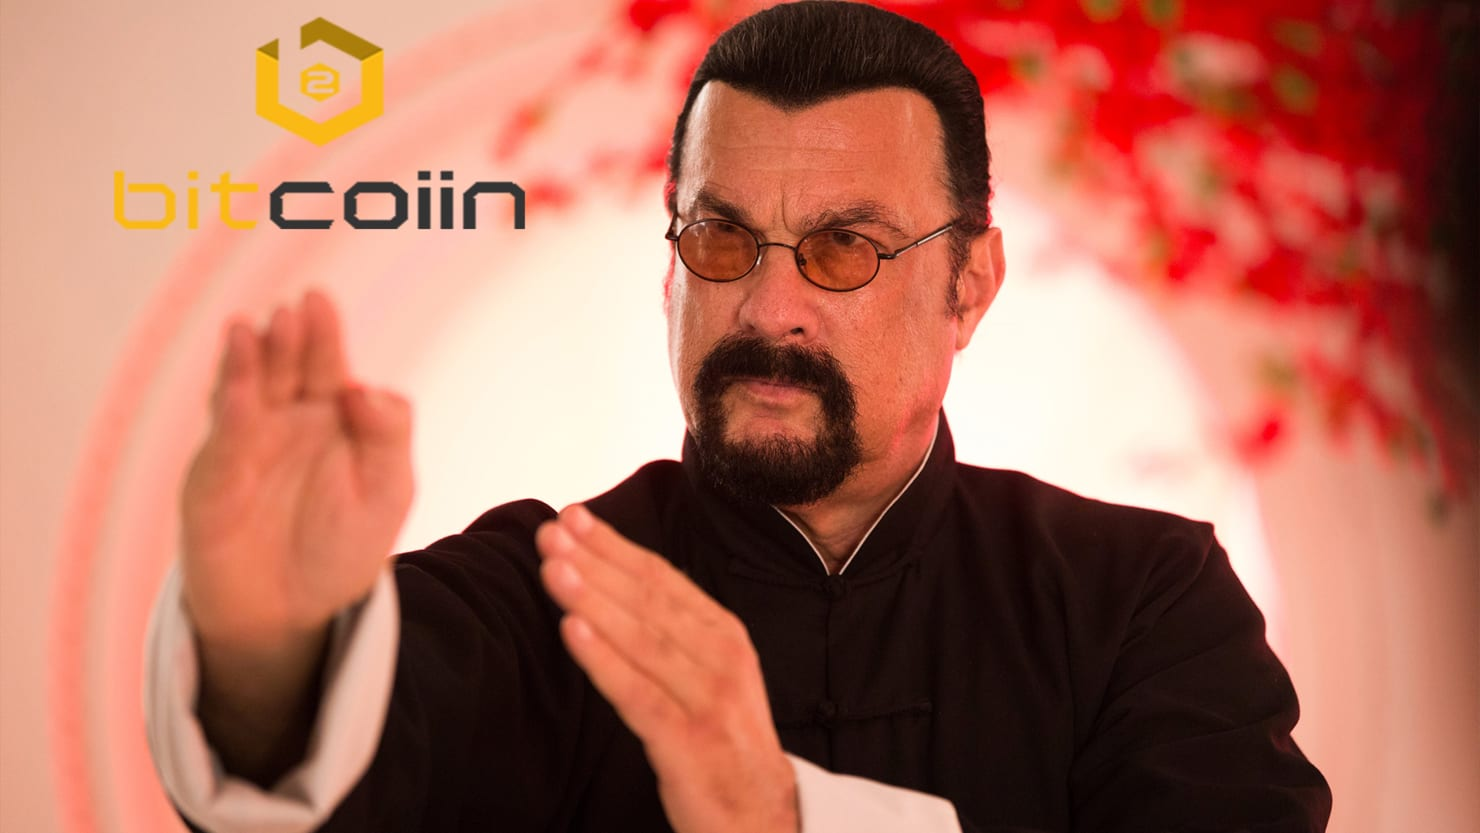 Steven Seagal, a Missing Interior most See, and an Alleged Crypto Fraud